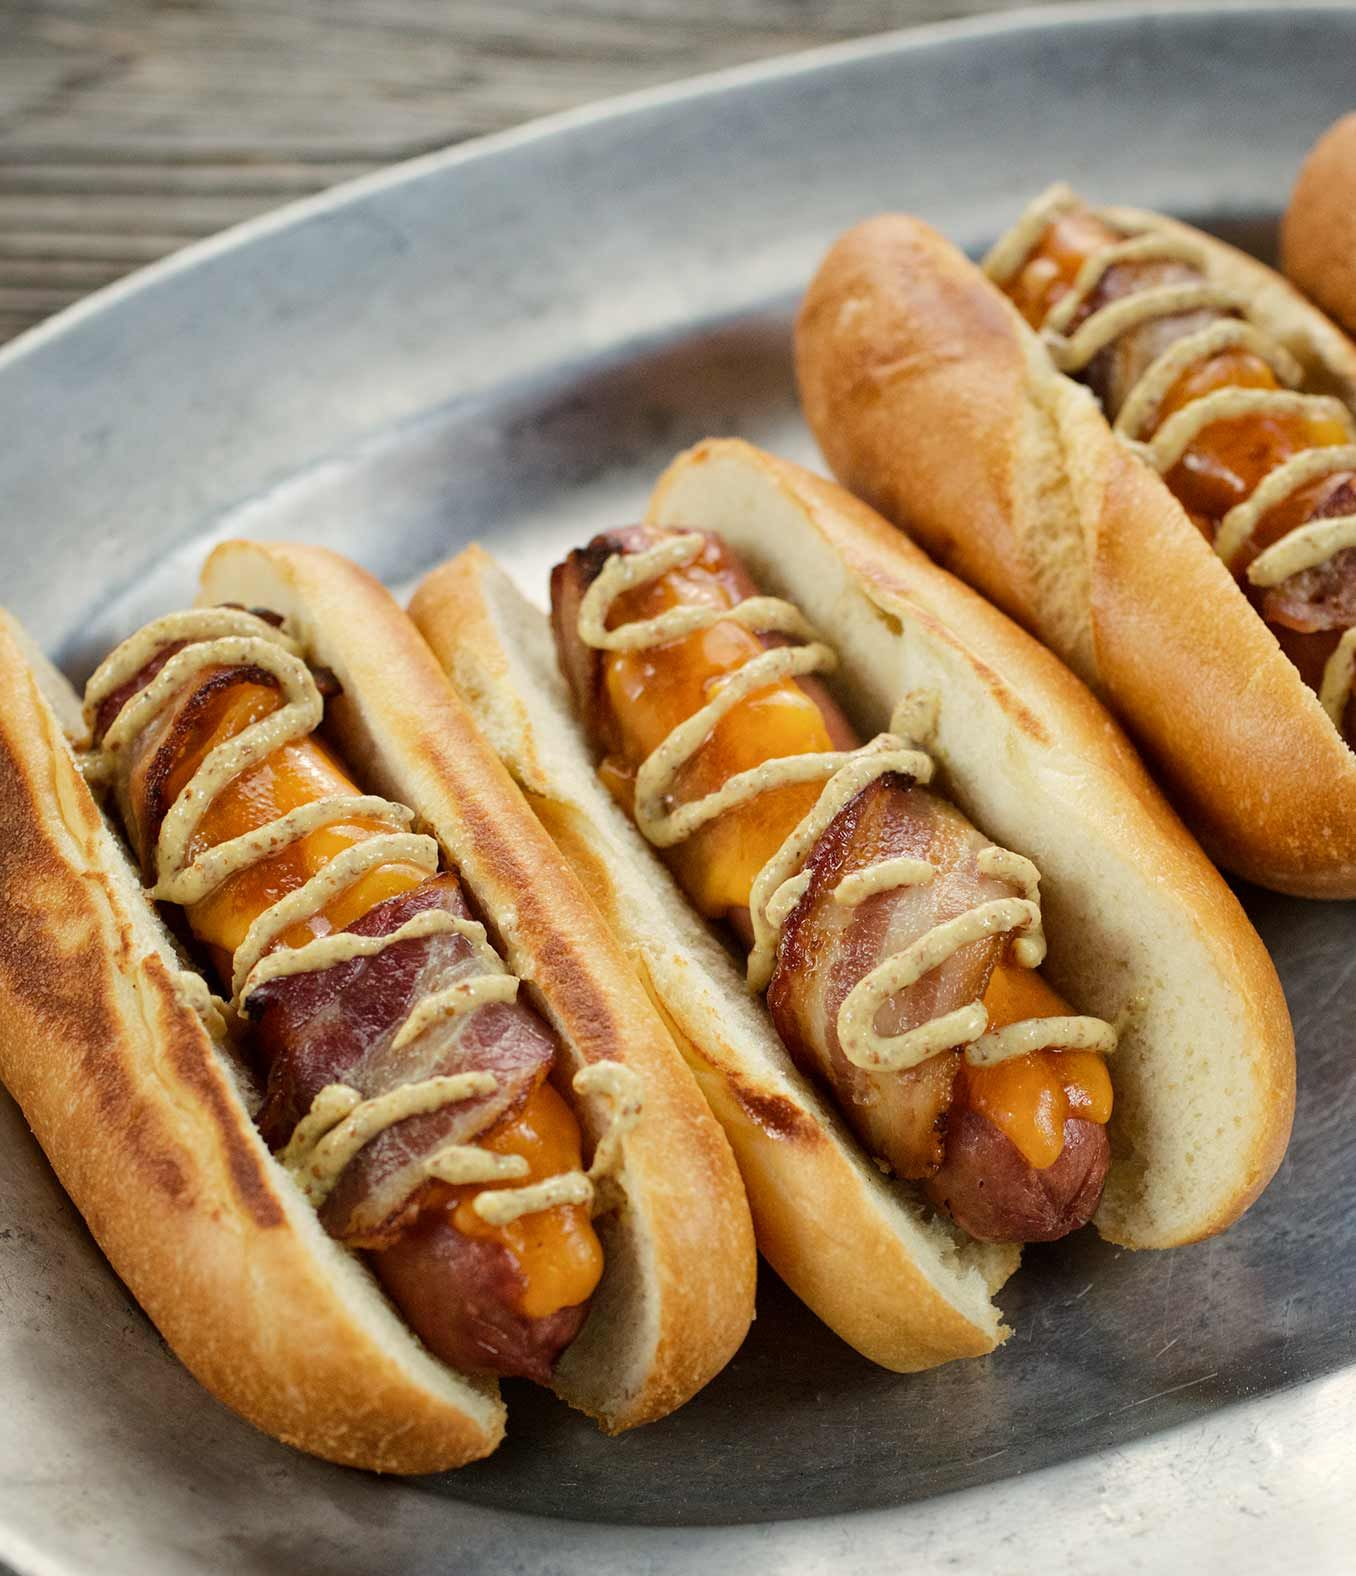 CheeseStuffed BaconWrapped Hot Dogs with Organic Valley